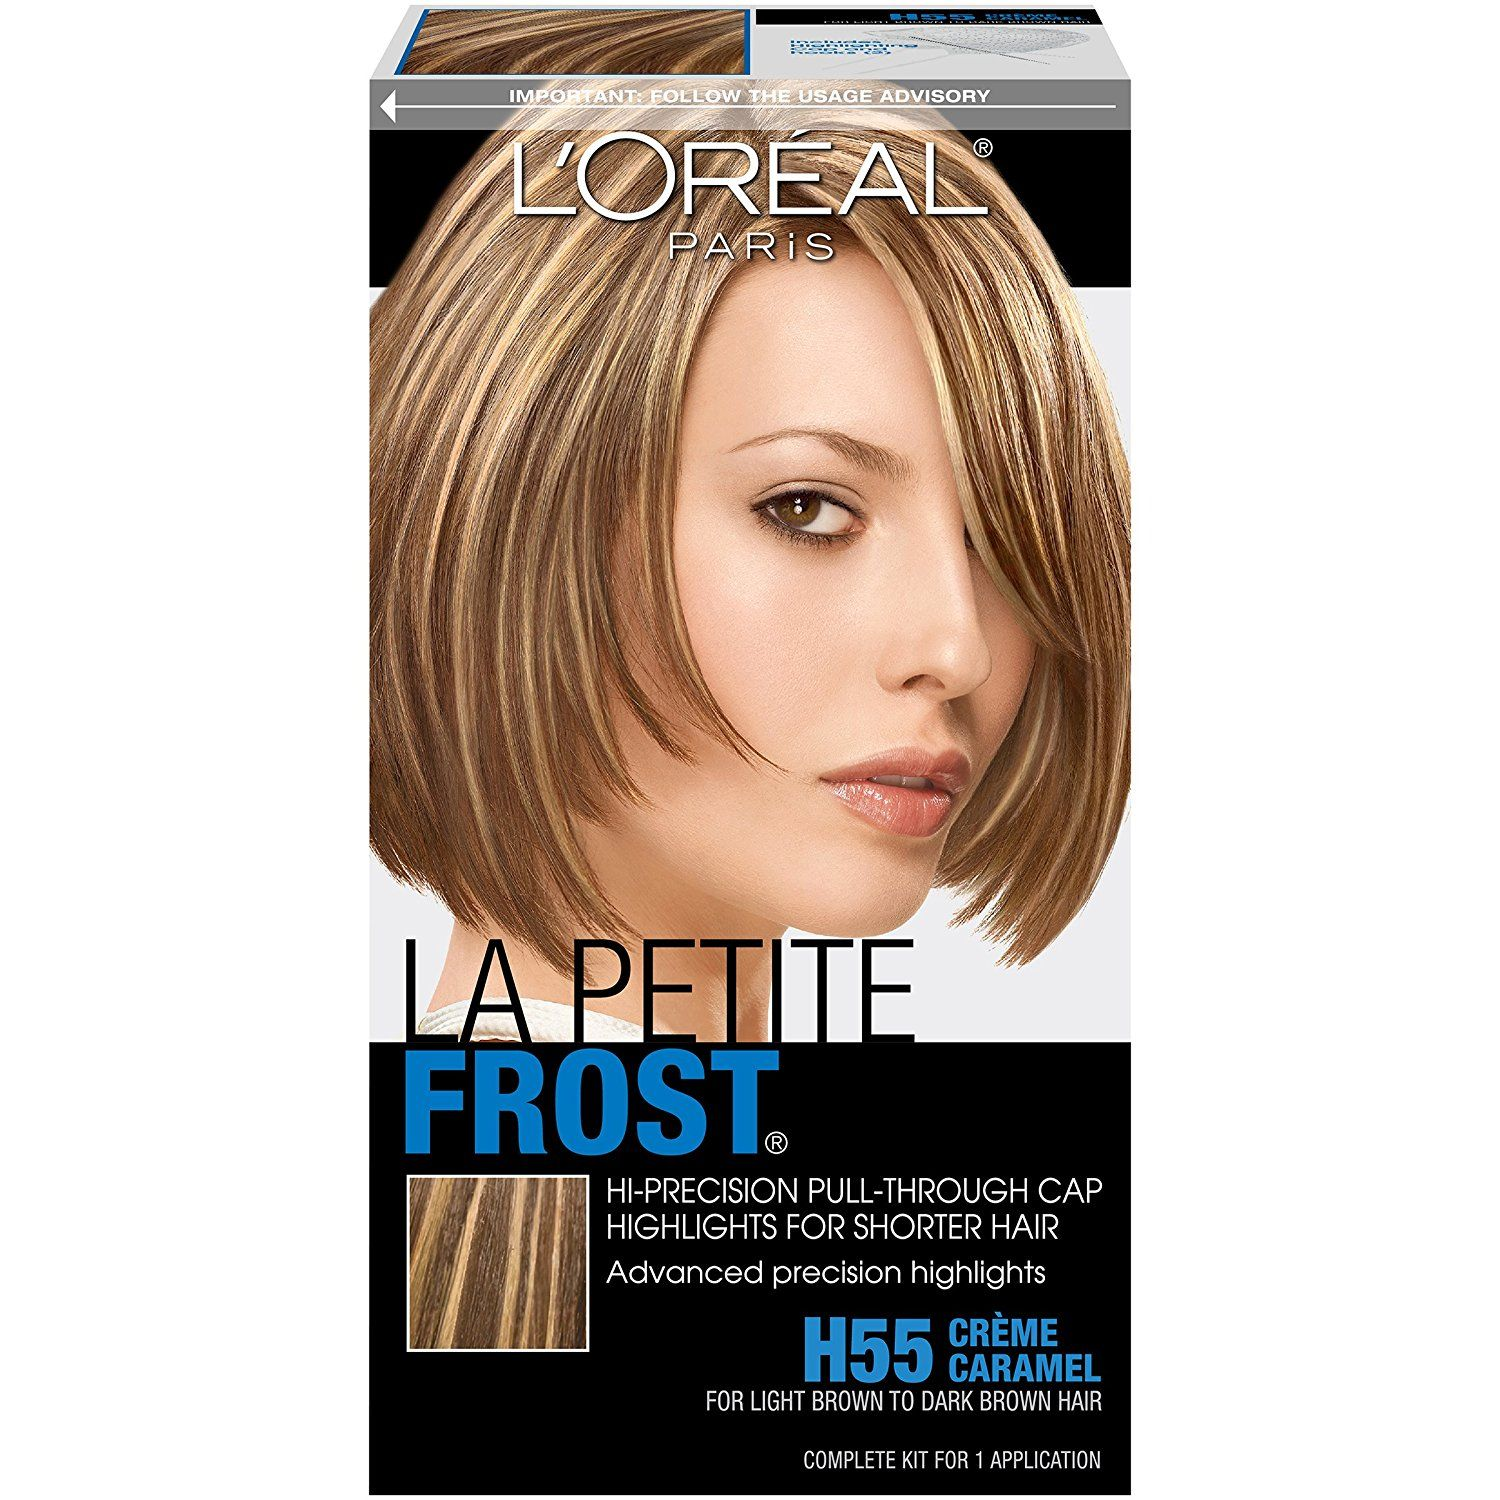 Loreal Paris Le Petite Frost Pull Through Cap Highlights For Short